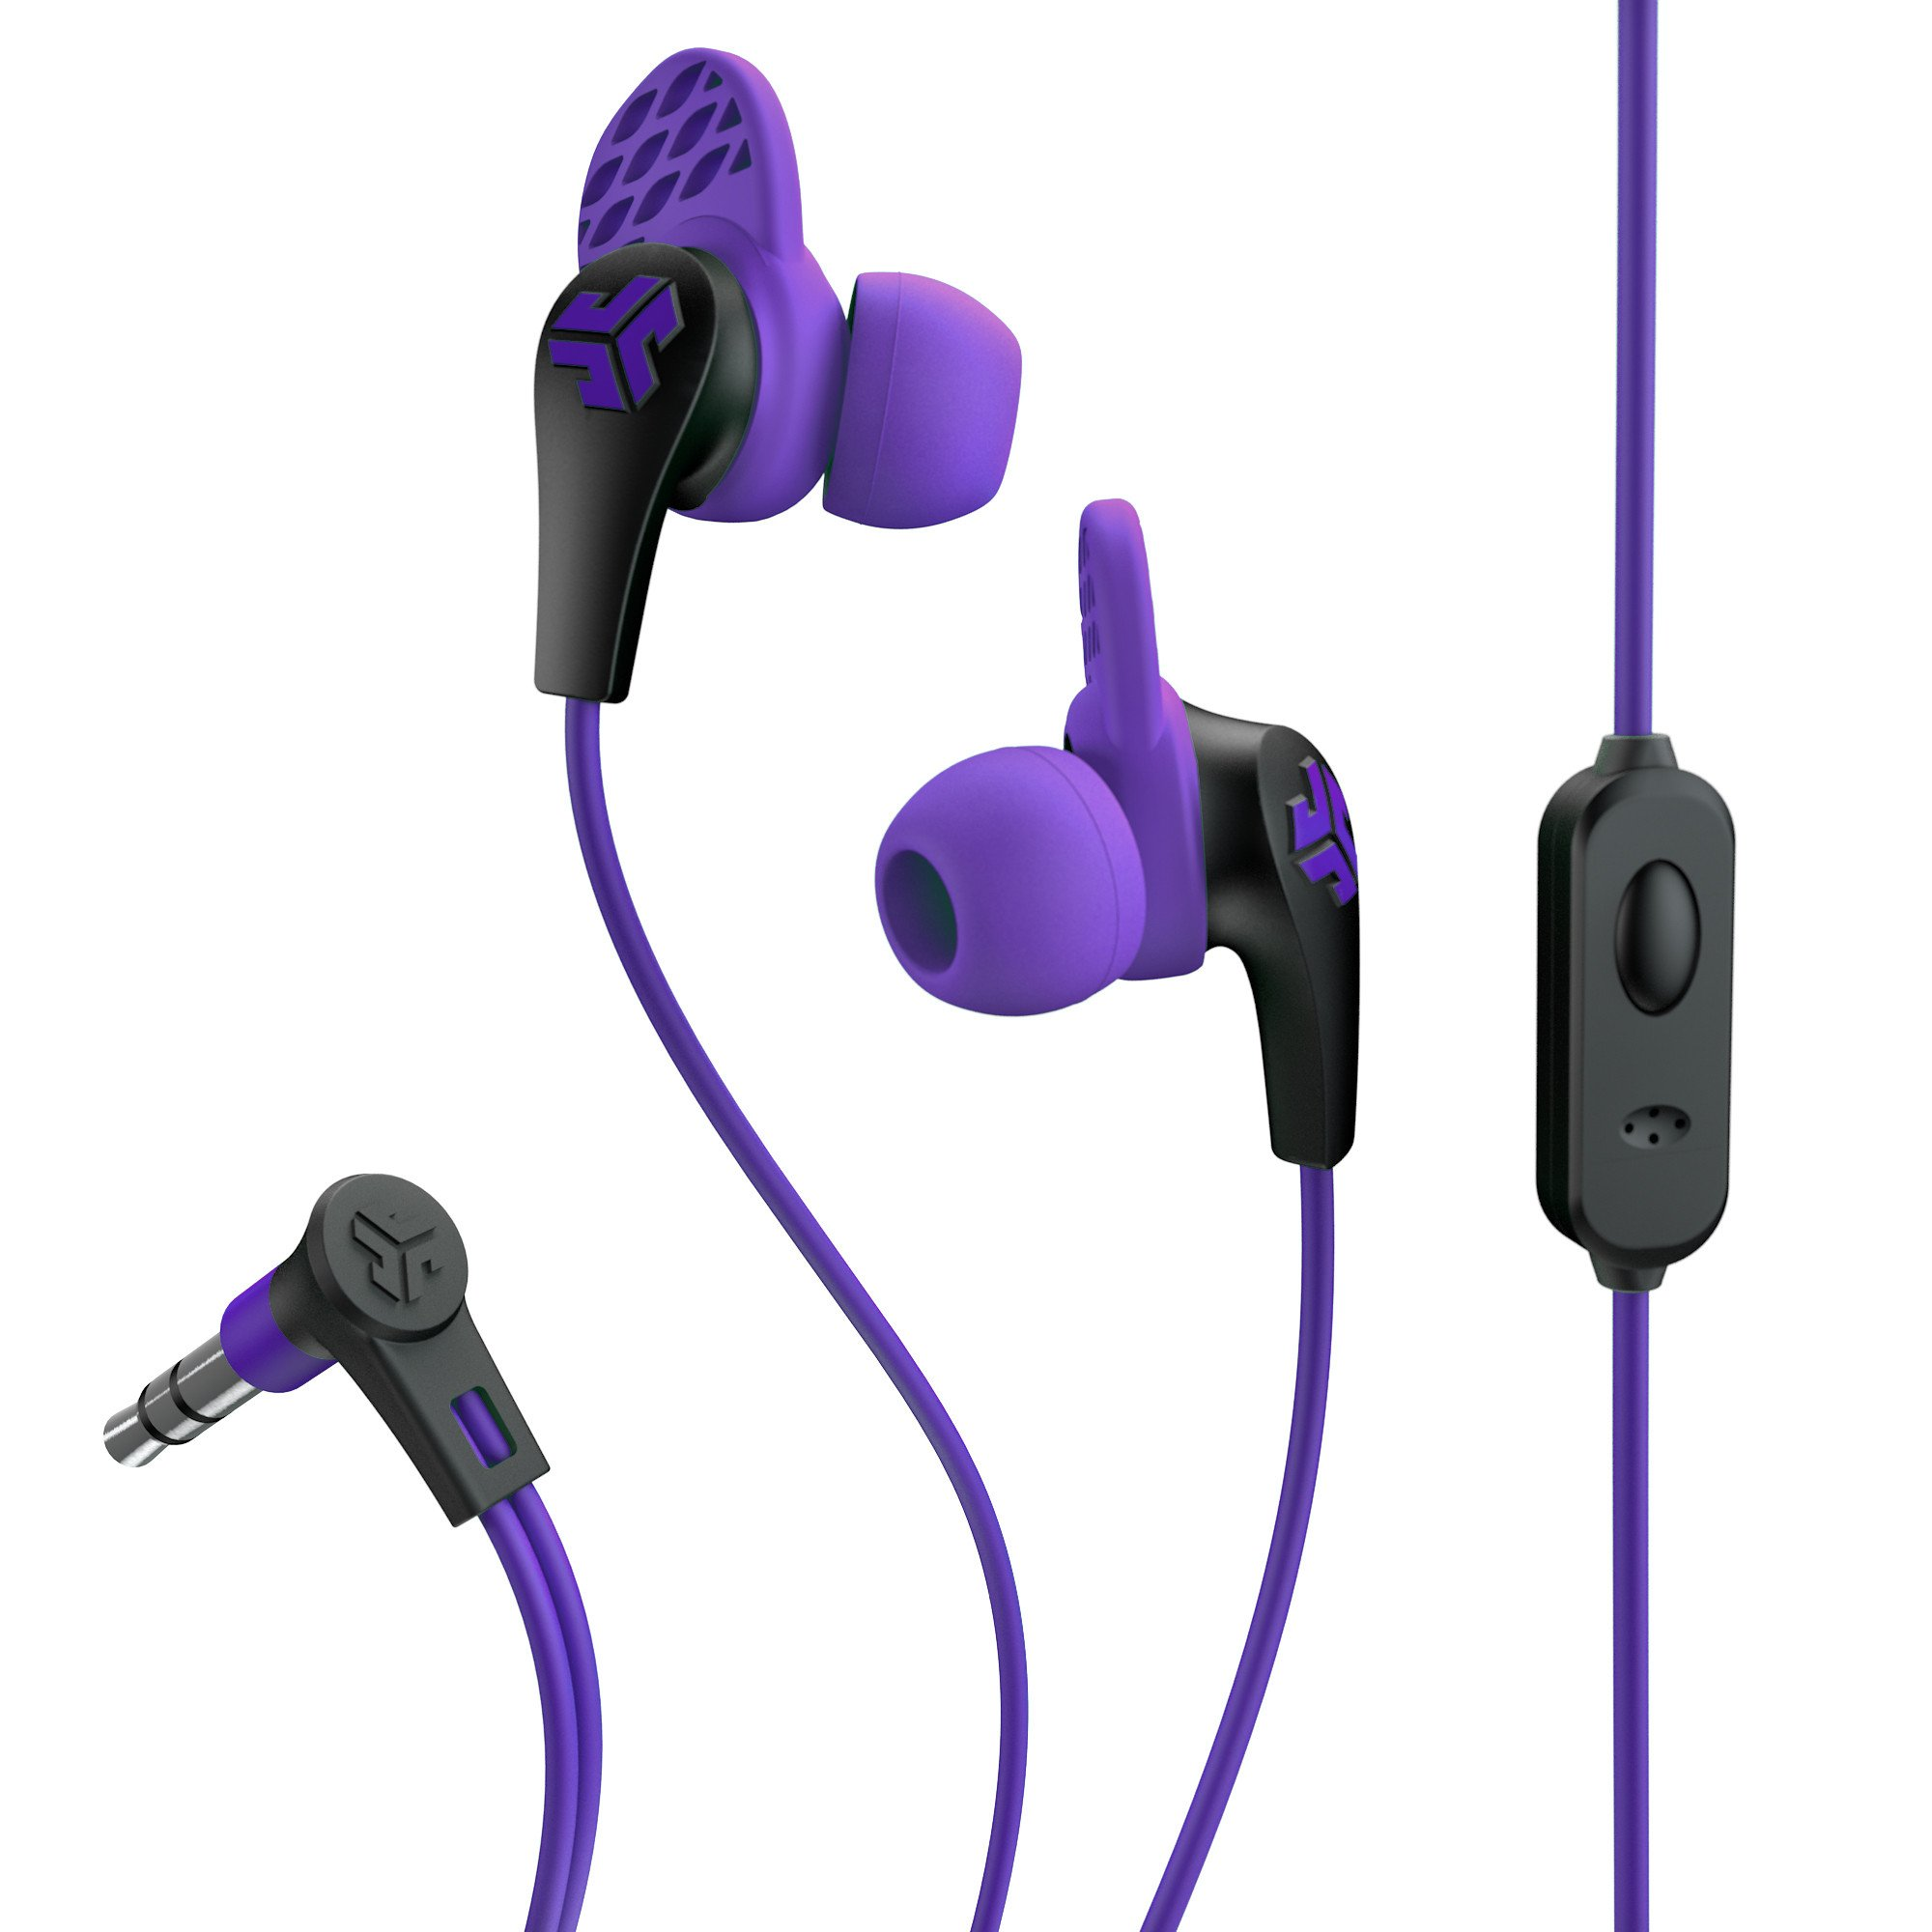 JLab Audio JBuds PRO Premium in-ear Earbuds with Mic, Guaranteed Fit, GUARANTEED FOR LIFE - Purple